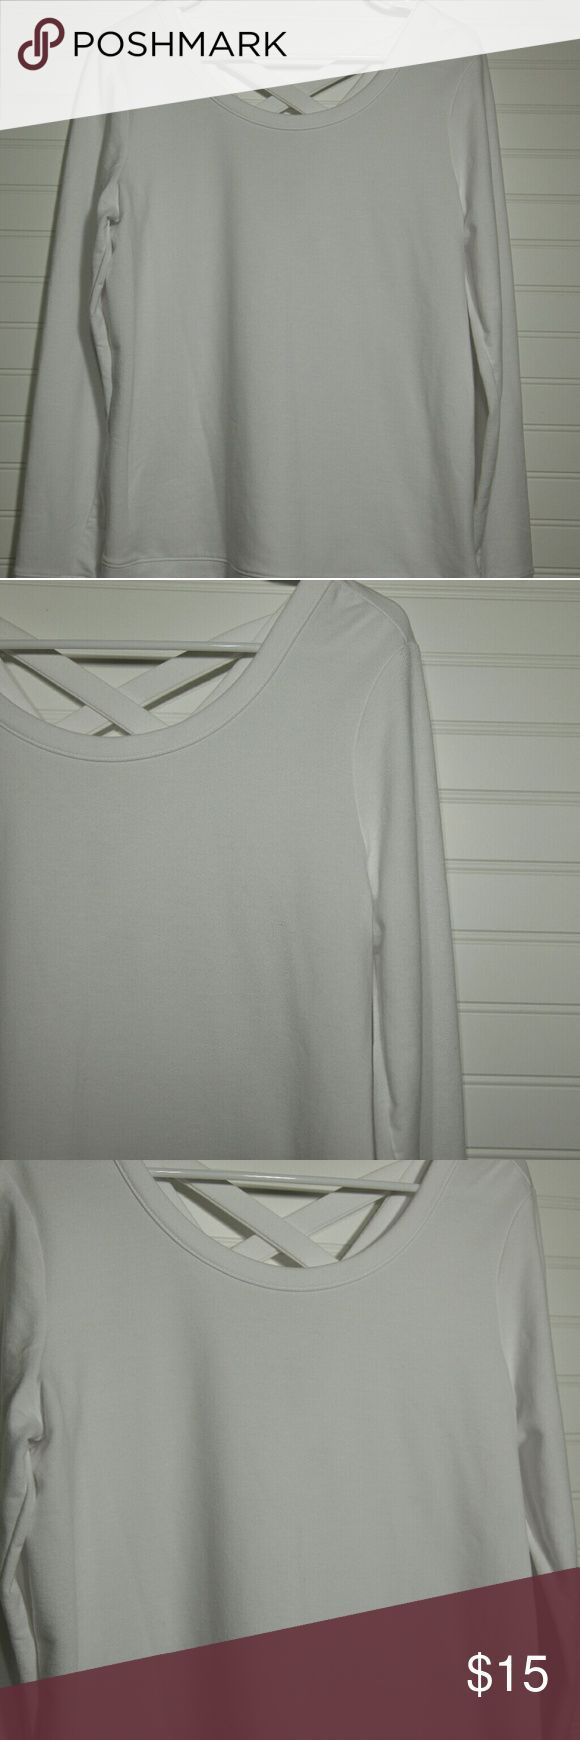 Old Navy Women's ActiveWear Swearshirt Top Only worn once! Old Navy Active Sweatshirt- thin! Love the X back!! Size Small Old Navy Tops Sweatshirts & Hoodies